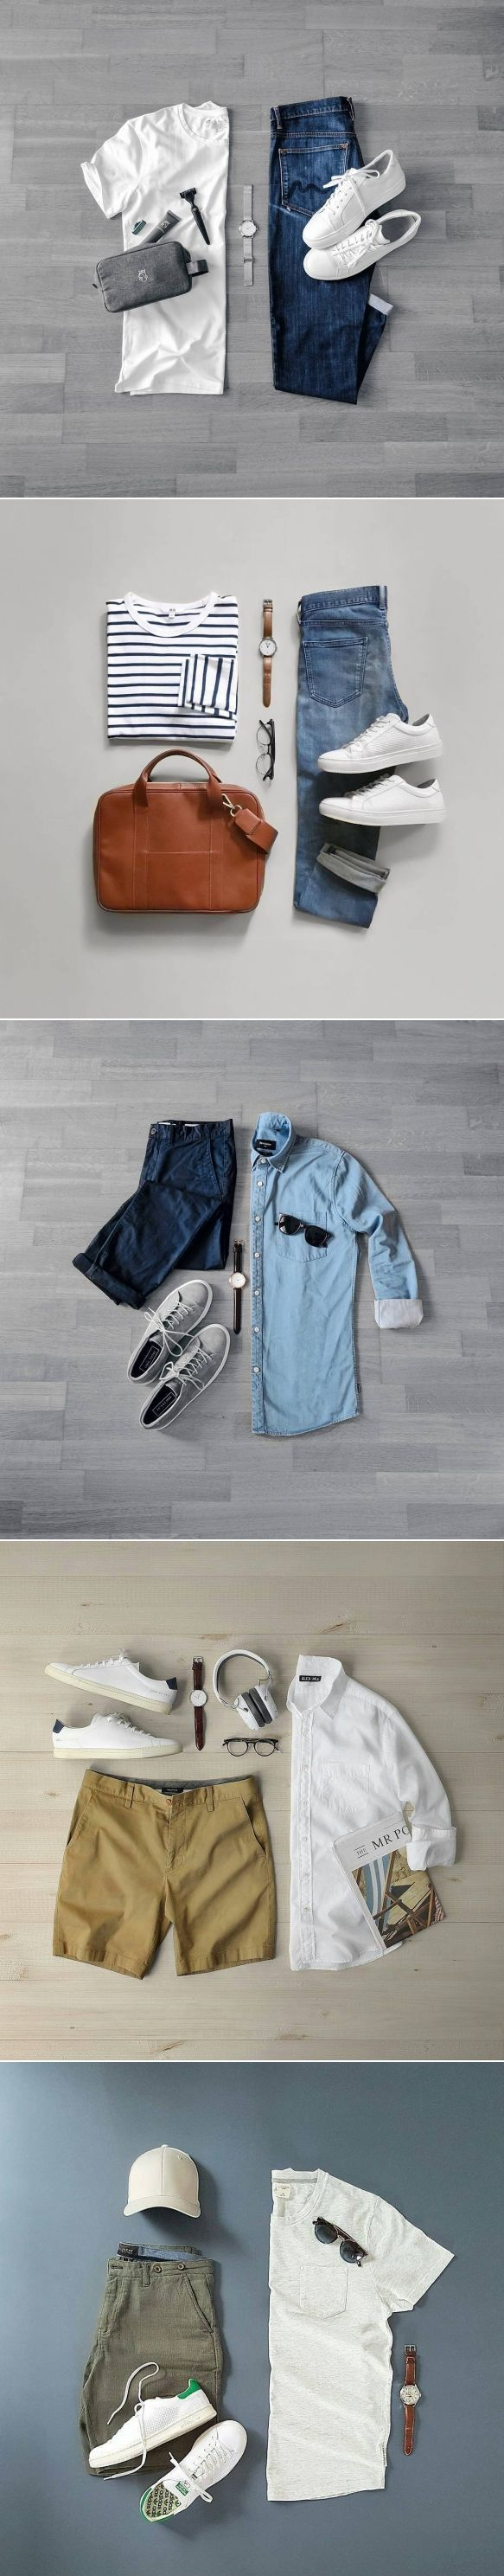 outfit grids for men - here is where you can find that Perfect Gift for Friends and Family Members